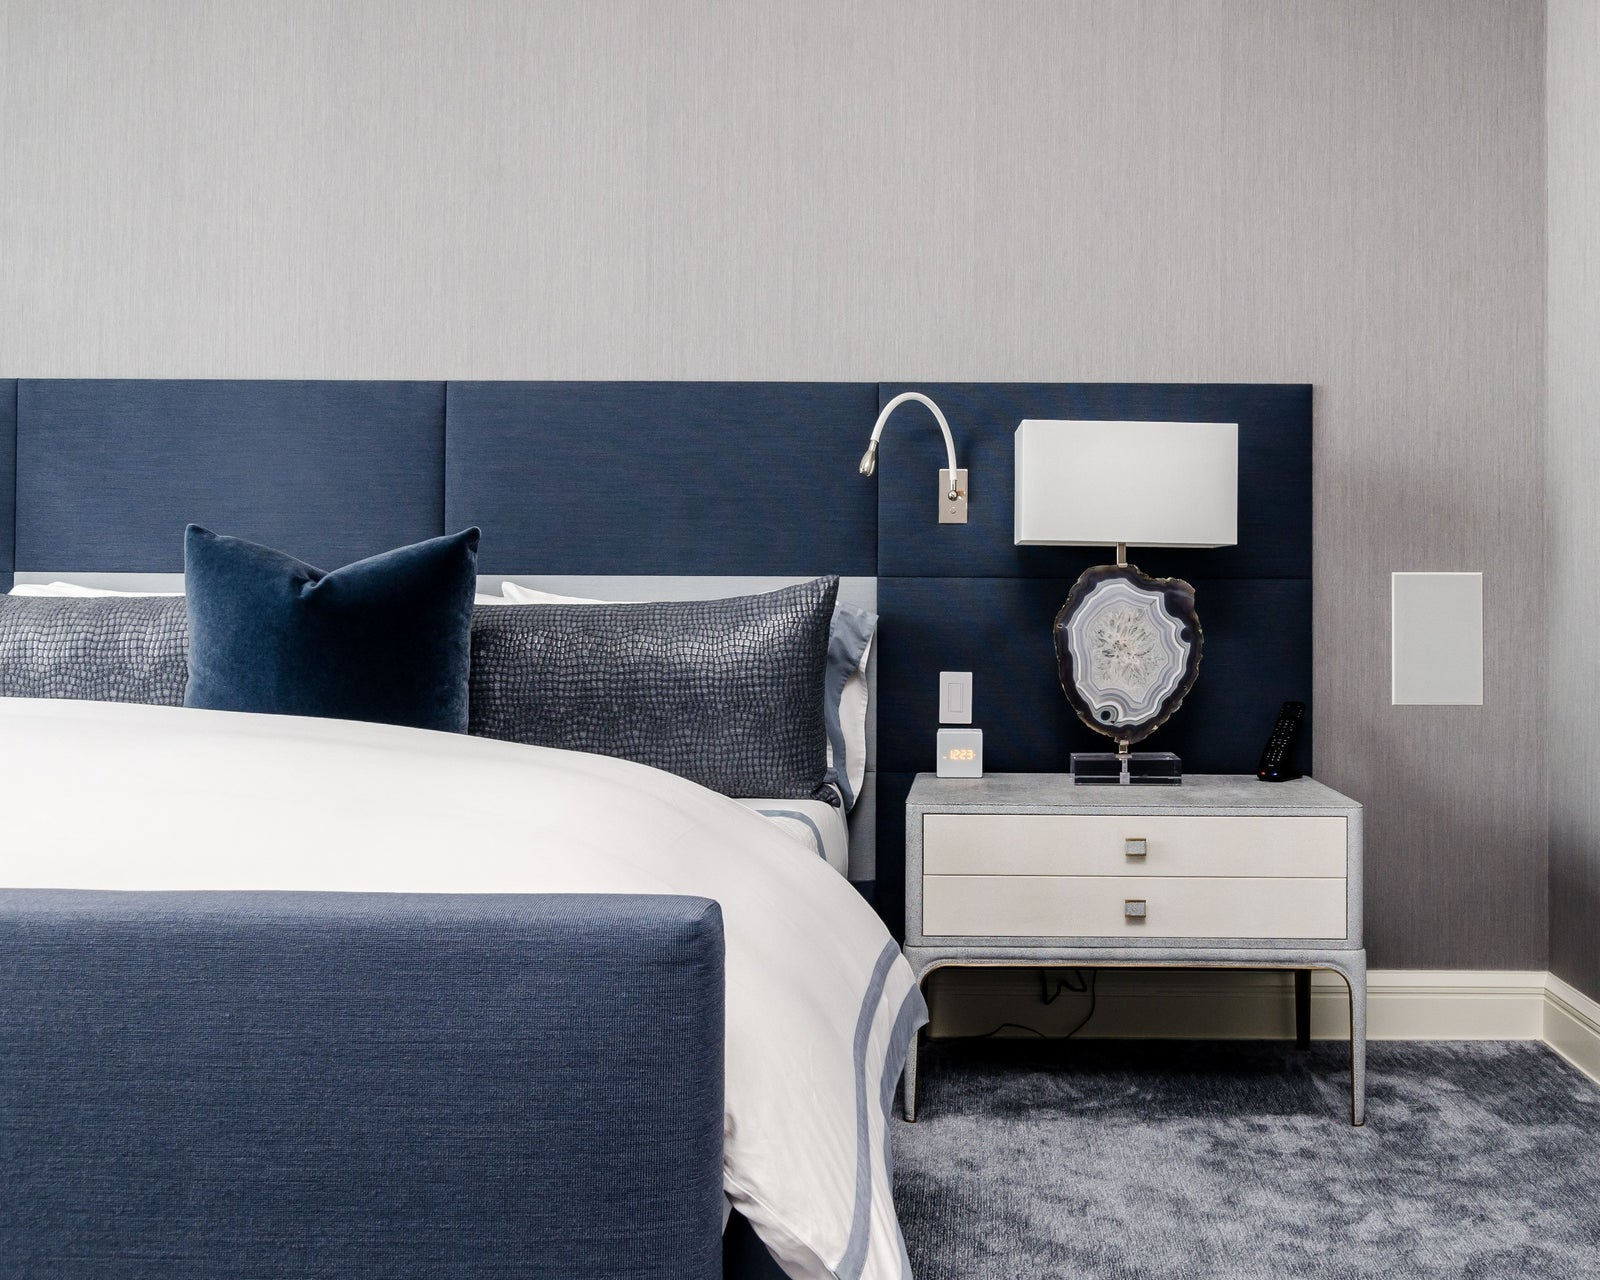 11 Bedroom Ideas - Decorating Tips To Get The Best Sleep